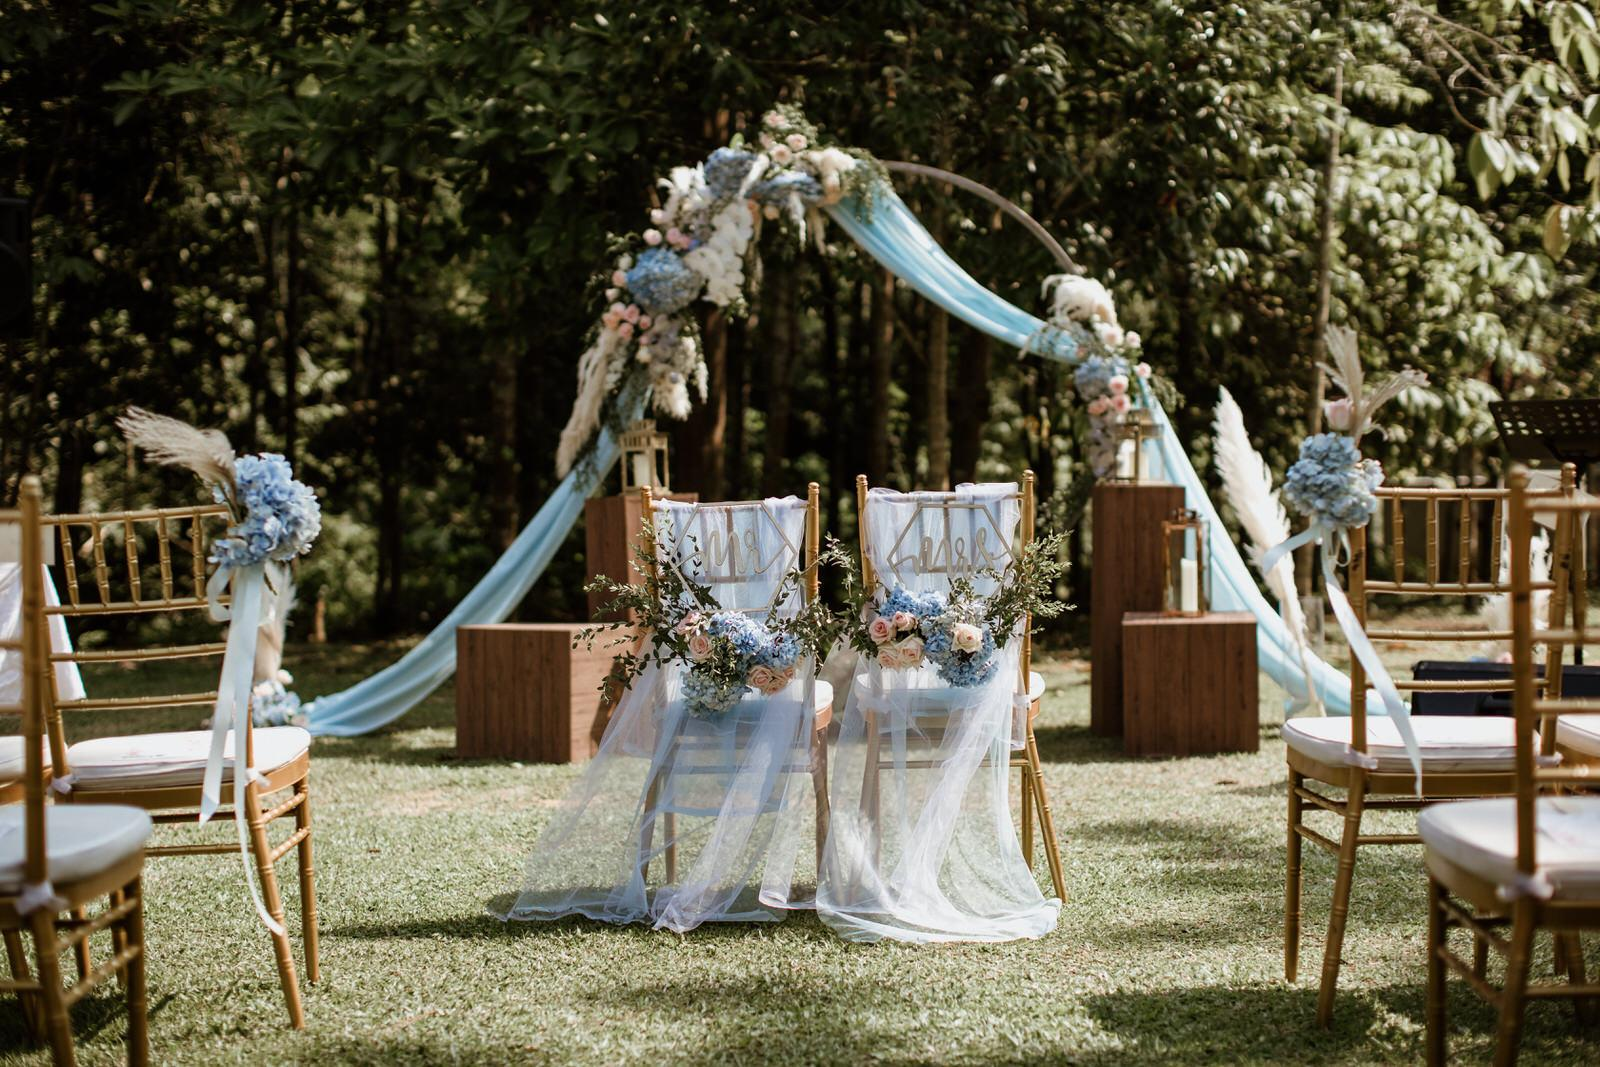 Tanarimba Rustic Garden Weding Janda baik Decoration wooden chair feather flowers Cliff Choong Photography